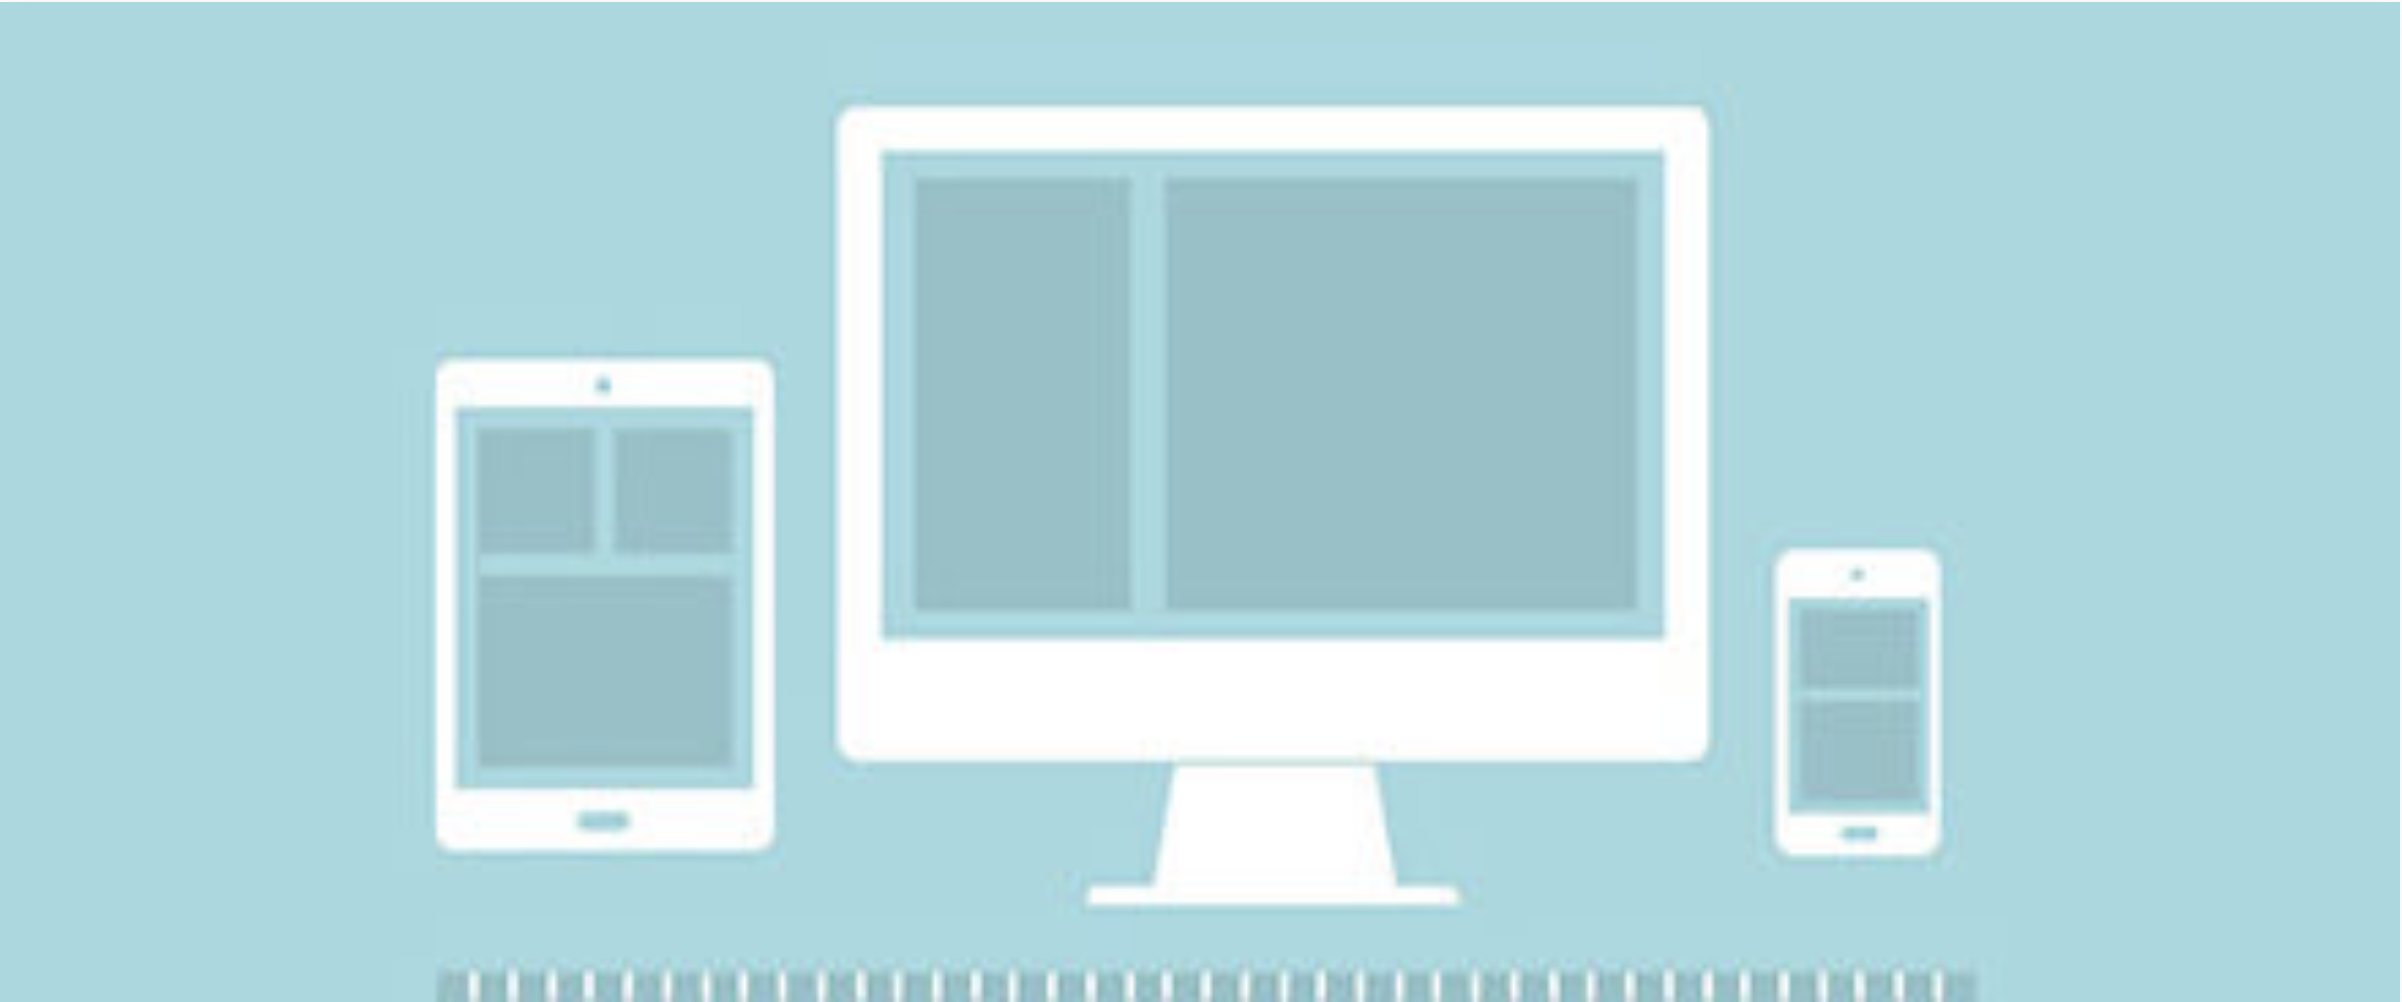 What Exactly You Need to Know About Adaptive Web Design